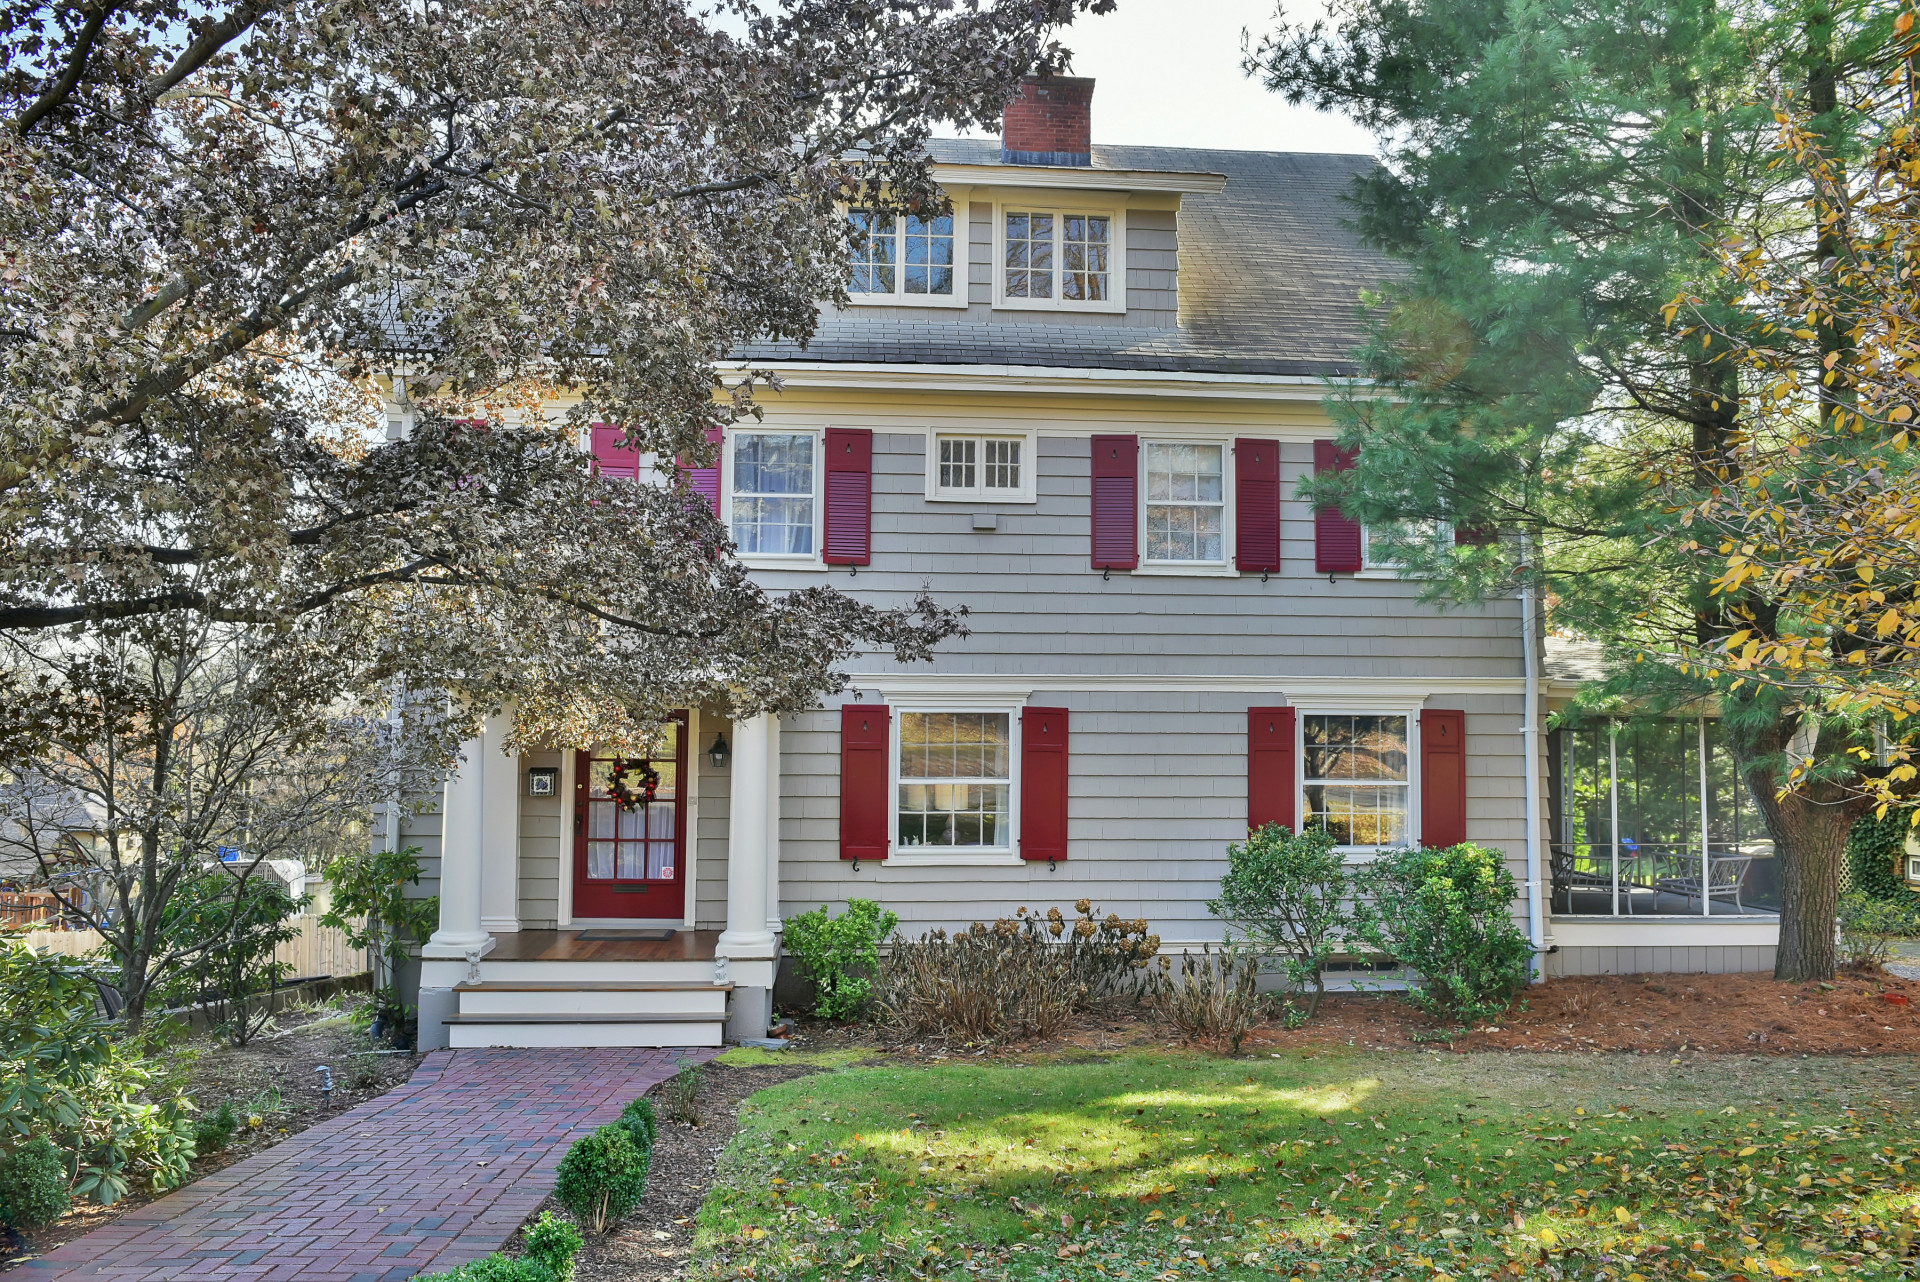 Living In Montclair Nj : The New York Times features 11 Prospect Avenue in ...